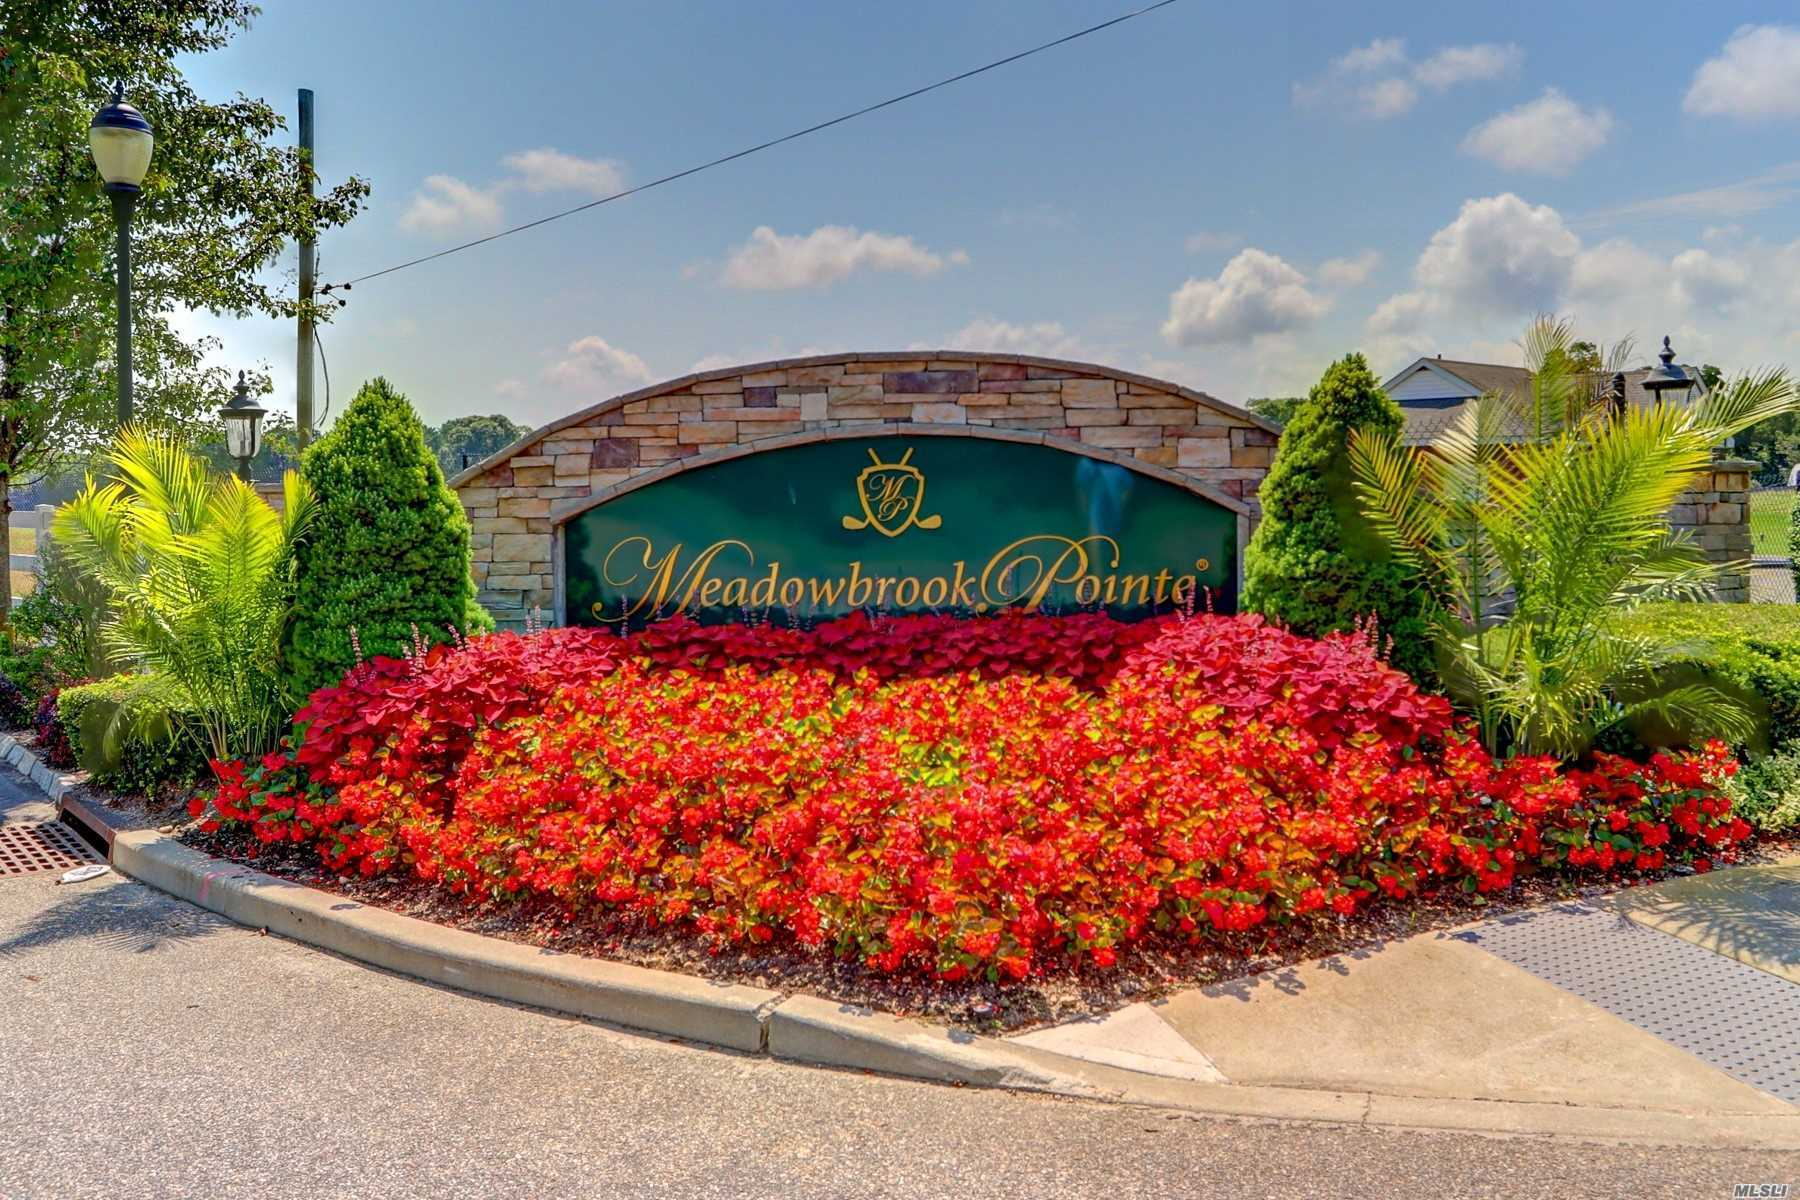 Enjoy your retirement years in this spectacular townhome boasting exceptional Vistas overlooking Pond, Golf Course and Fountains! Best possible location within the prestigious Meadowbrooke Pointe 55+ community. This Greenbriar Model is the largest available and has the bonus of a walk-out basement to an extra patio. The main two floors consist of spacious and gracious rooms with upgraded cabinetry and luxury baths. Throw away your shovels, mowers and high taxes and begin to live!!